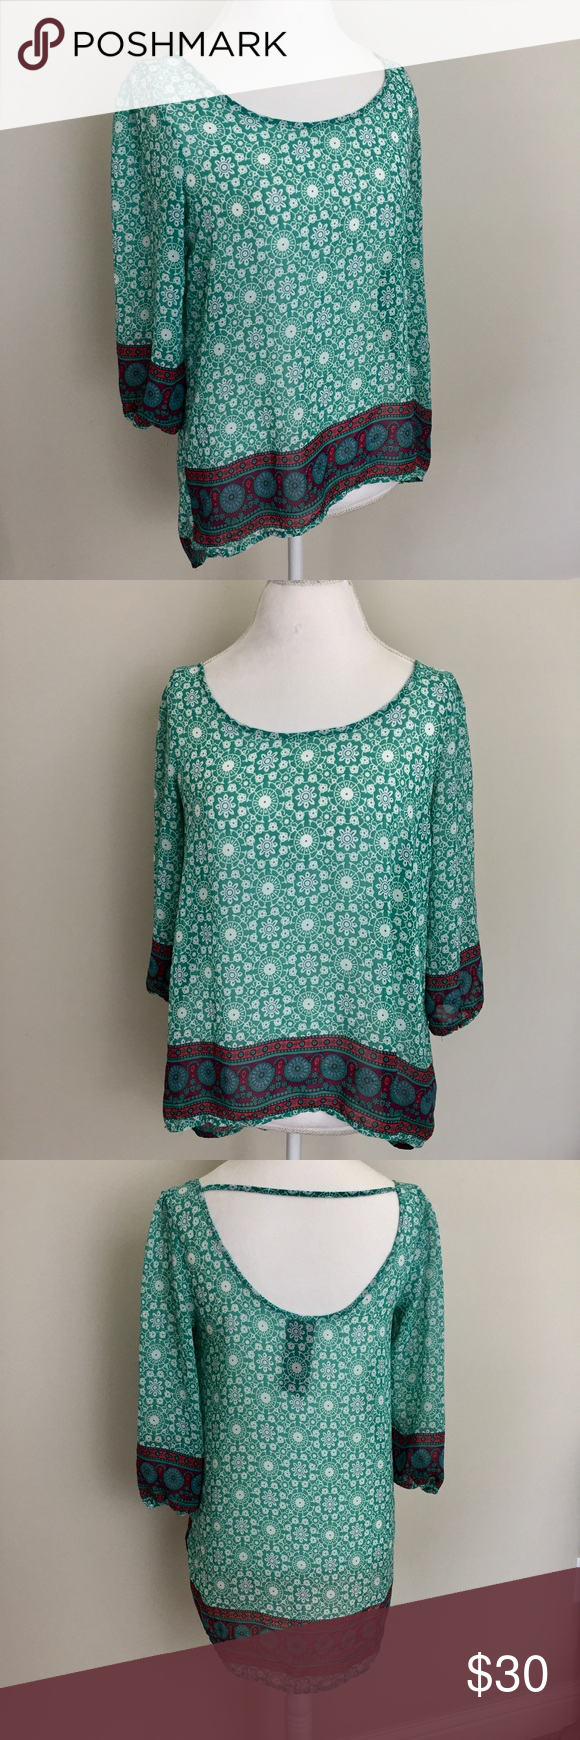 """Moon Collection Boho Tunic Top Multicolor printed boho Tunic Top by Moon Collection. Excellent condition with no flaws. Size large. Made of a silky feeling polyester. Approximate measurements flat and unstretched: pit to pit 17.5"""", front length 23.5"""", back length 28"""". ⚓️No trades or holds. I negotiate only through the offer button. Any measurements listed are approximate since I am not a seamstress. 🚭🐩HB Moon Collection Tops Blouses"""